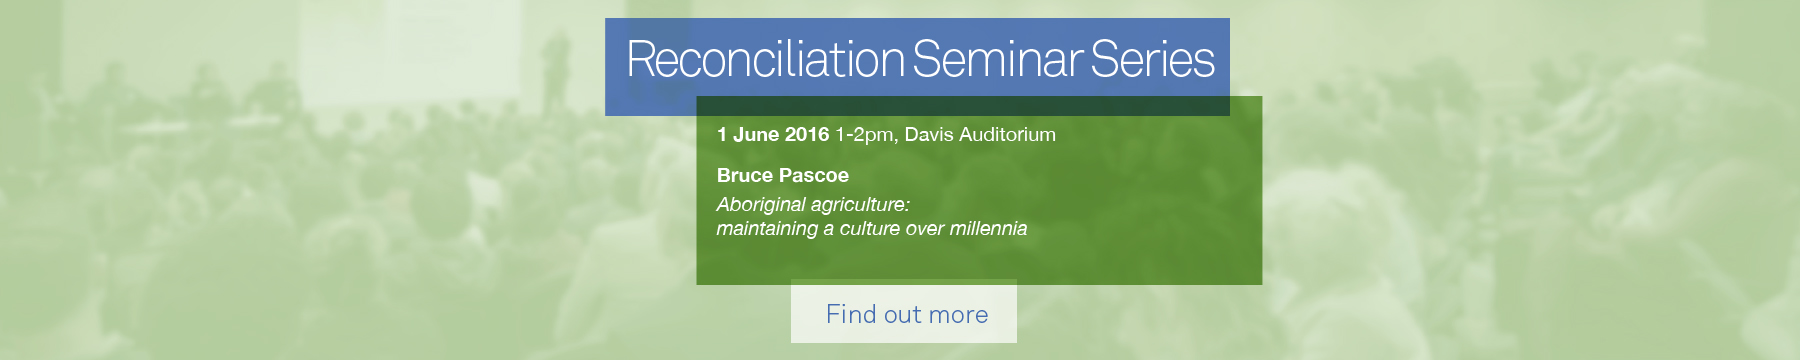 Bruce Pascoe seminar promotion